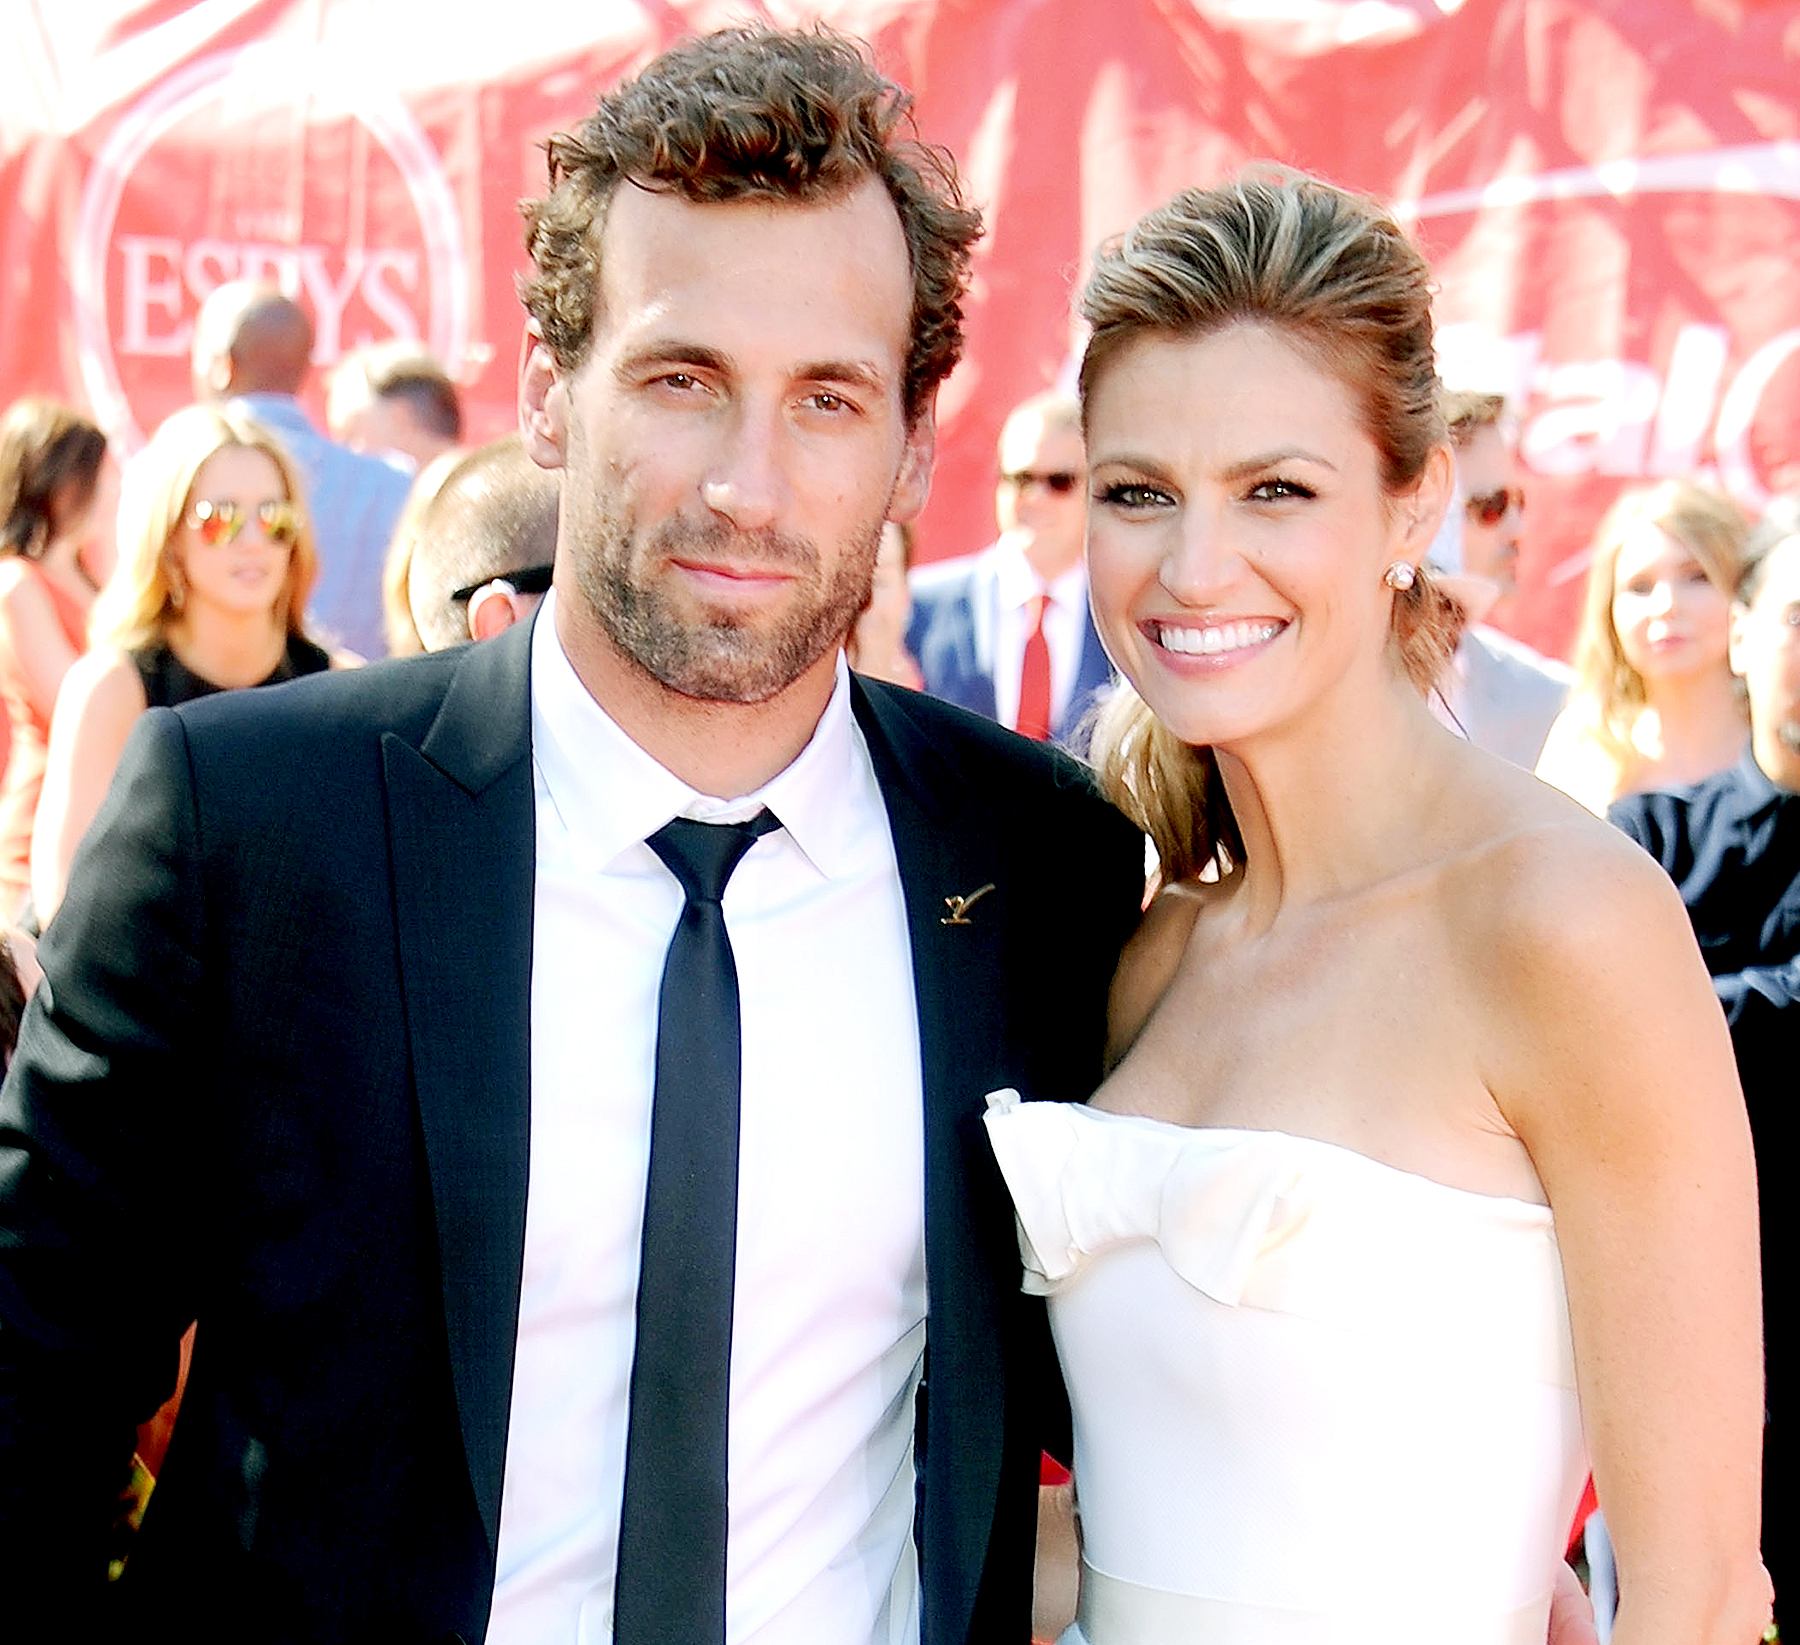 Erin Andrews and Jarret Stoll arrive at the 2014 ESPY Awards at Nokia Theatre L.A. Live on July 16, 2014 in Los Angeles, California.